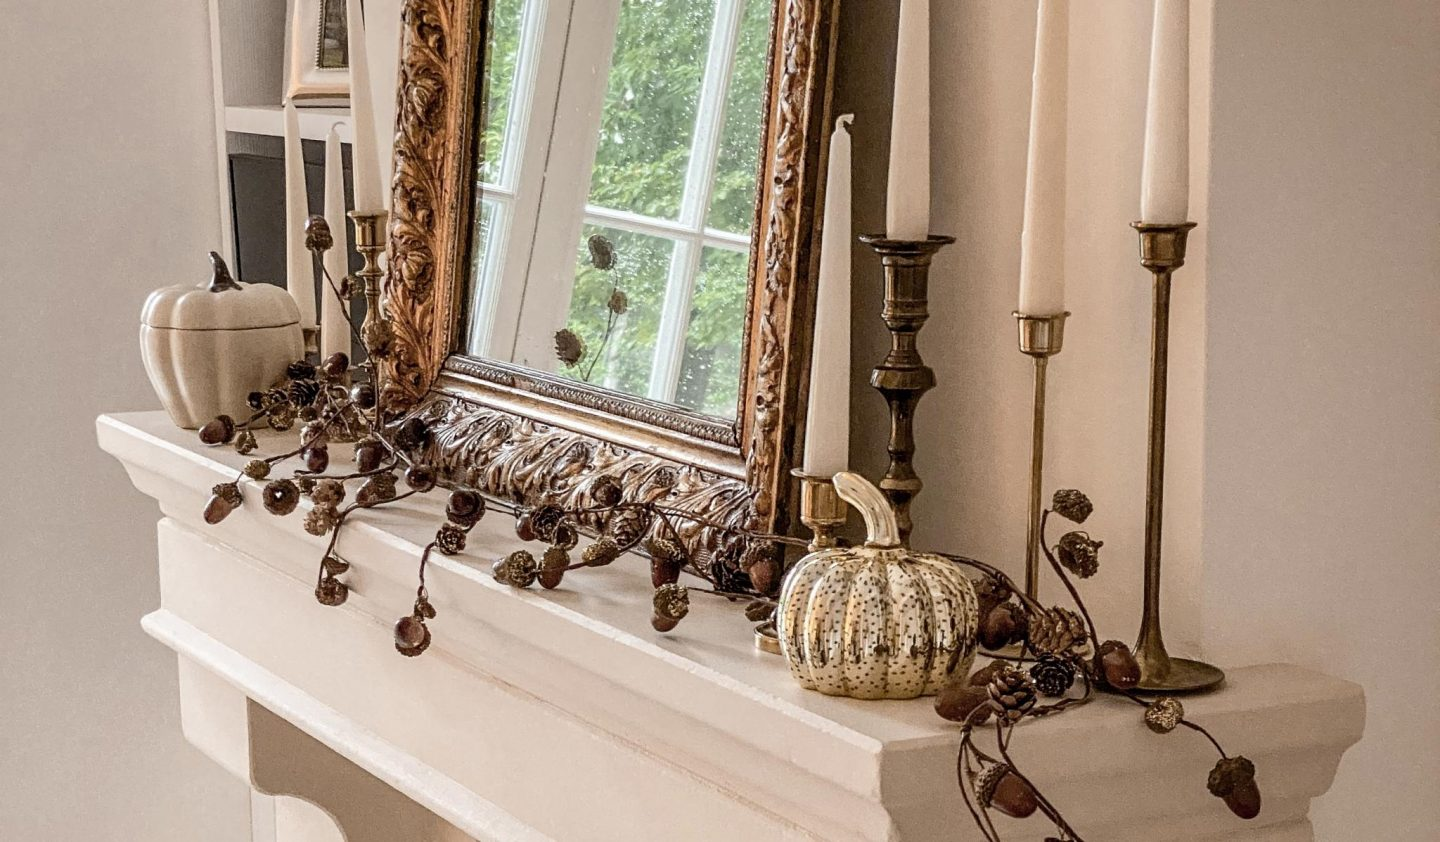 Fall decor at home on the fireplace